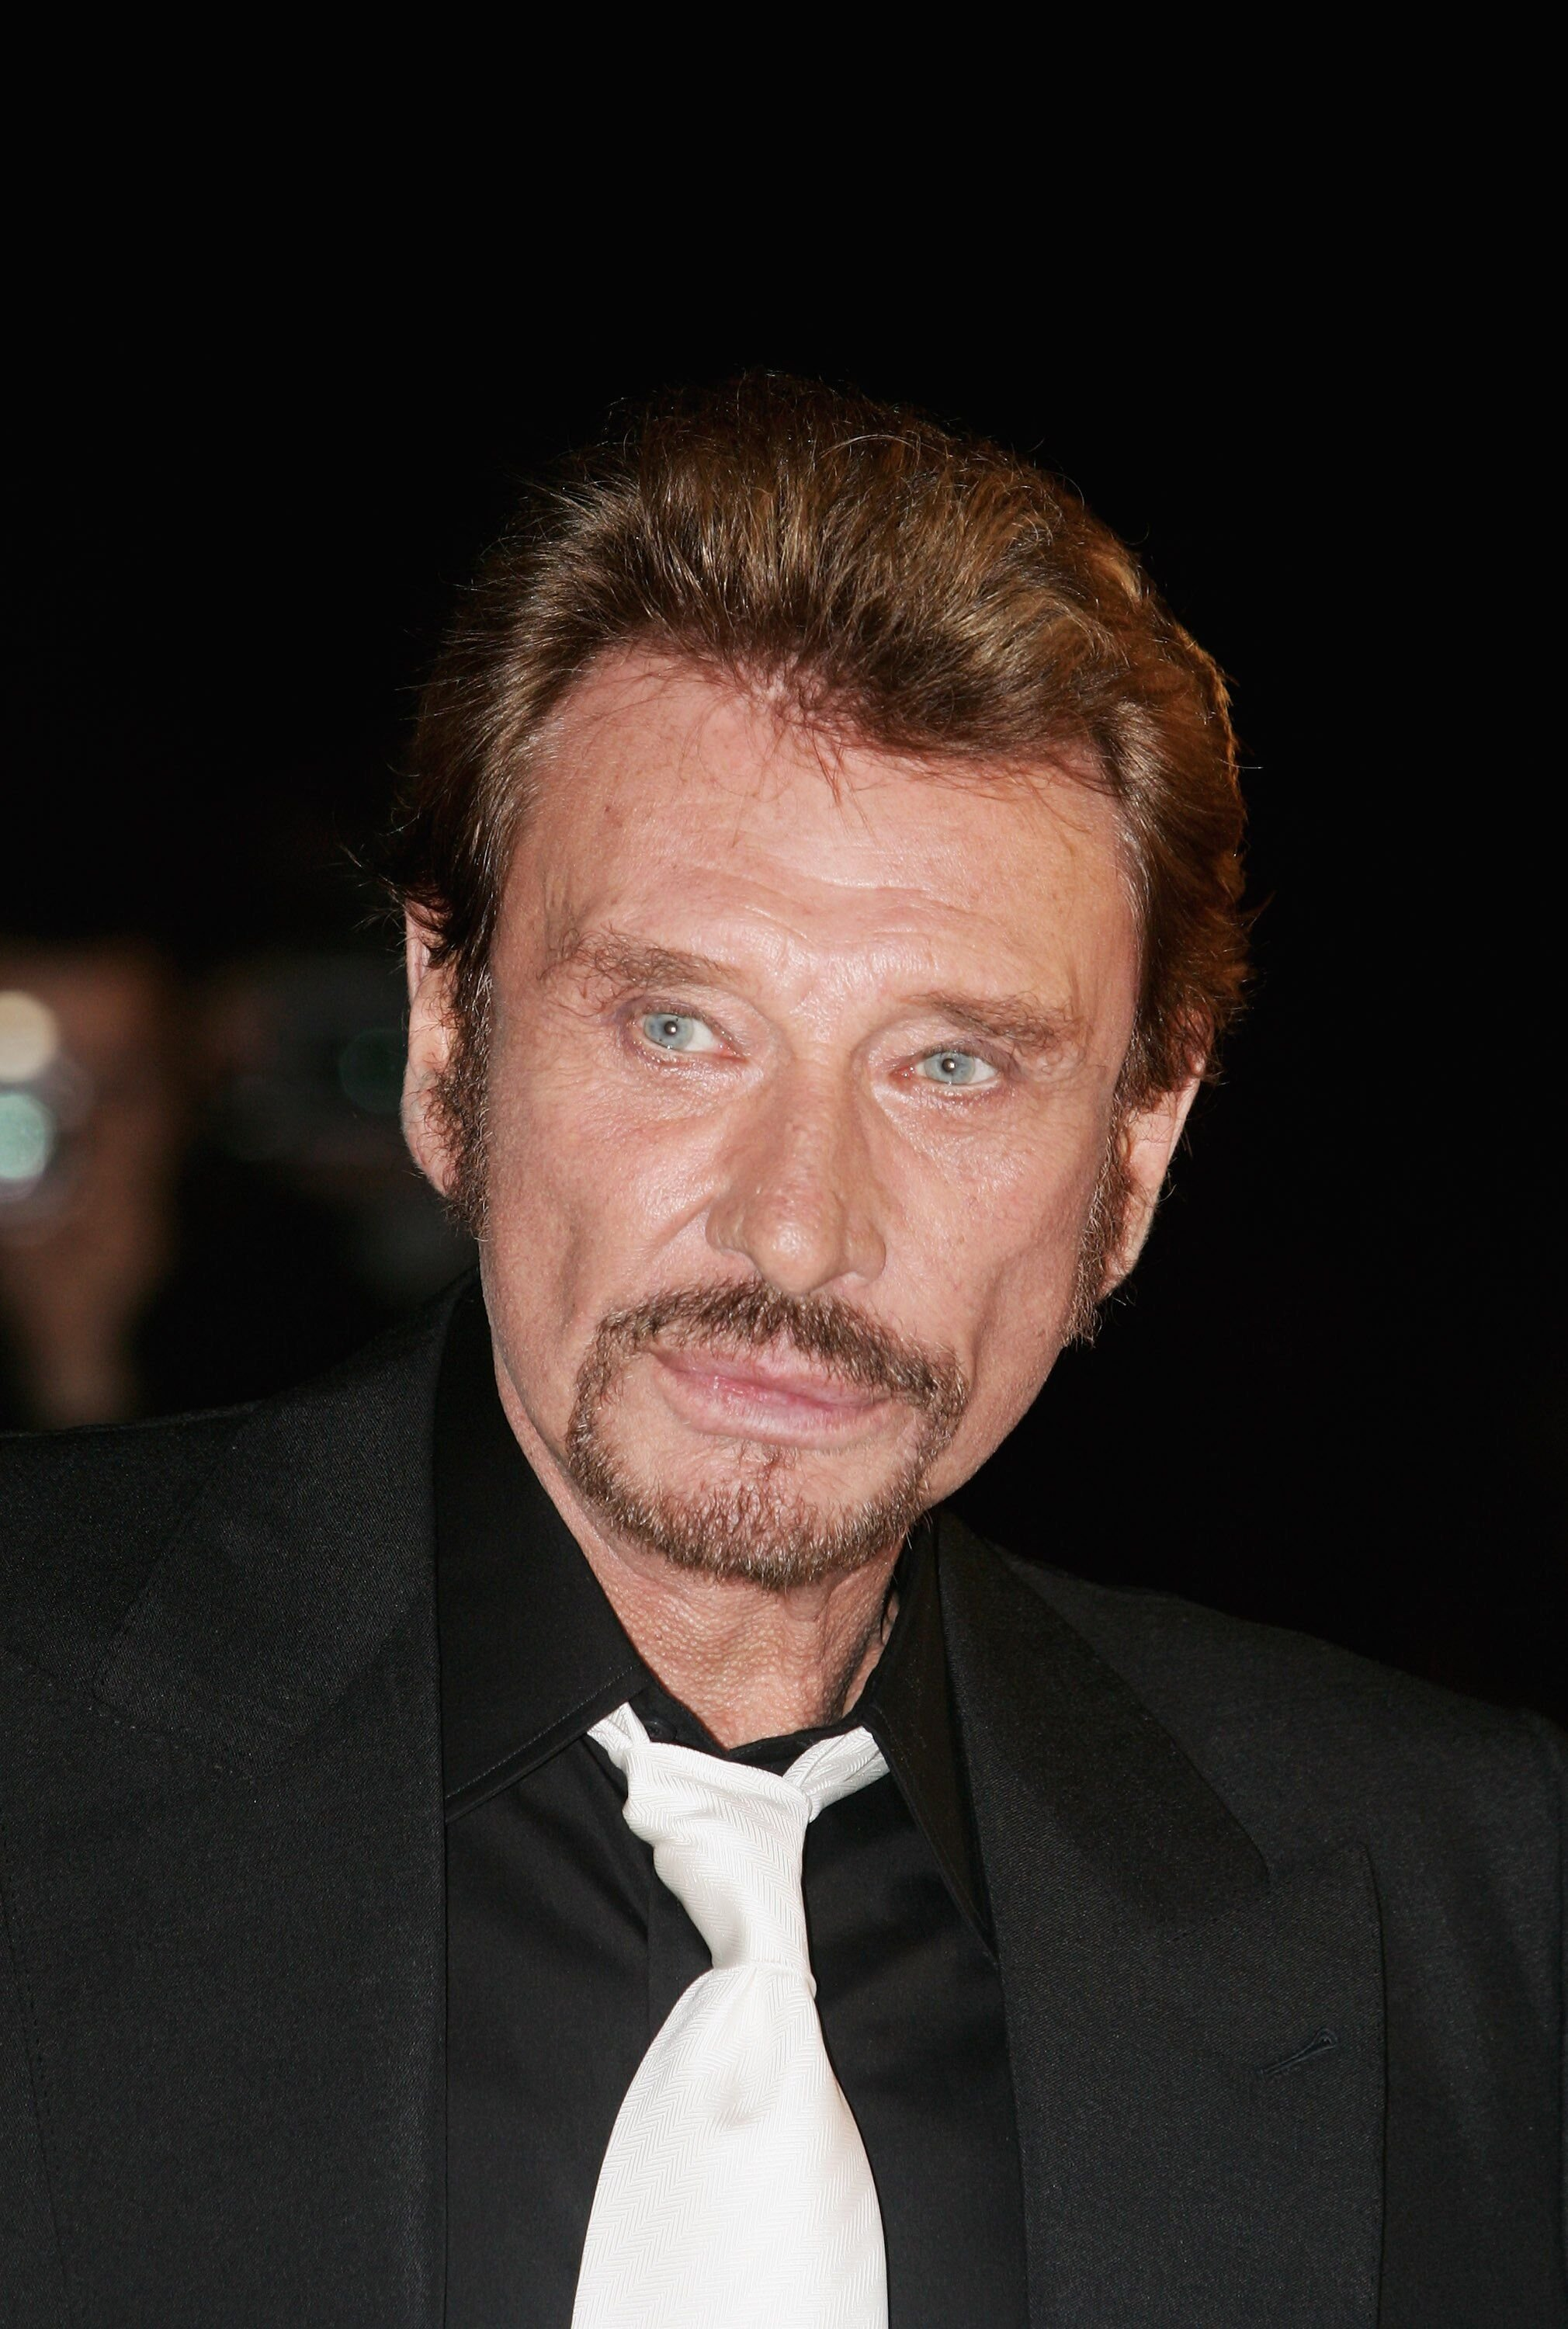 Johnny Hallyday arrive aux NRJ Music Awards 2006 au Palais des Festivals le 21 janvier 2006 à Cannes. | Photo : Getty Images